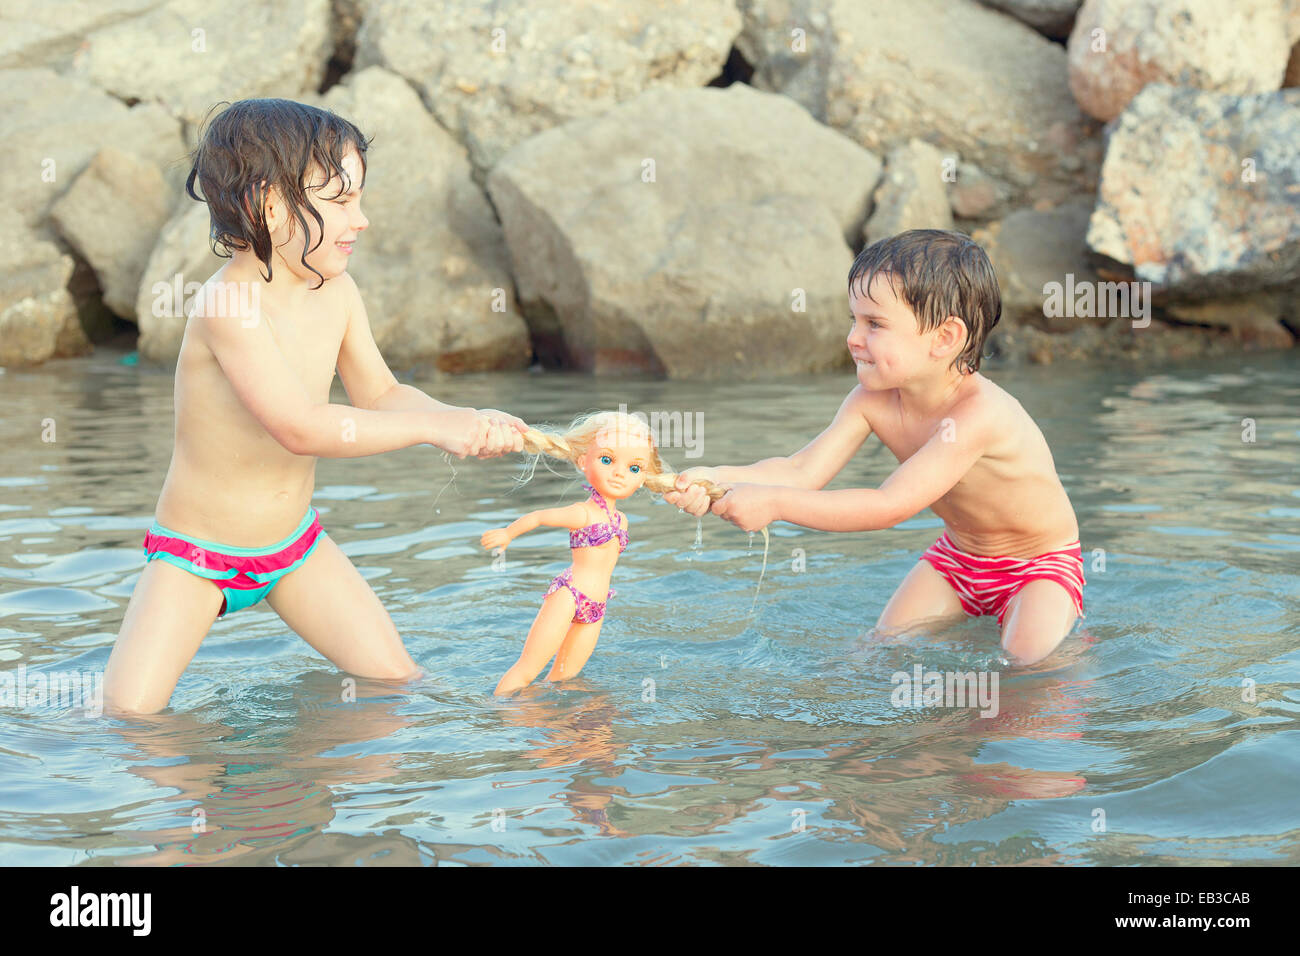 Girl and boy standing in lake fighting over doll - Stock Image